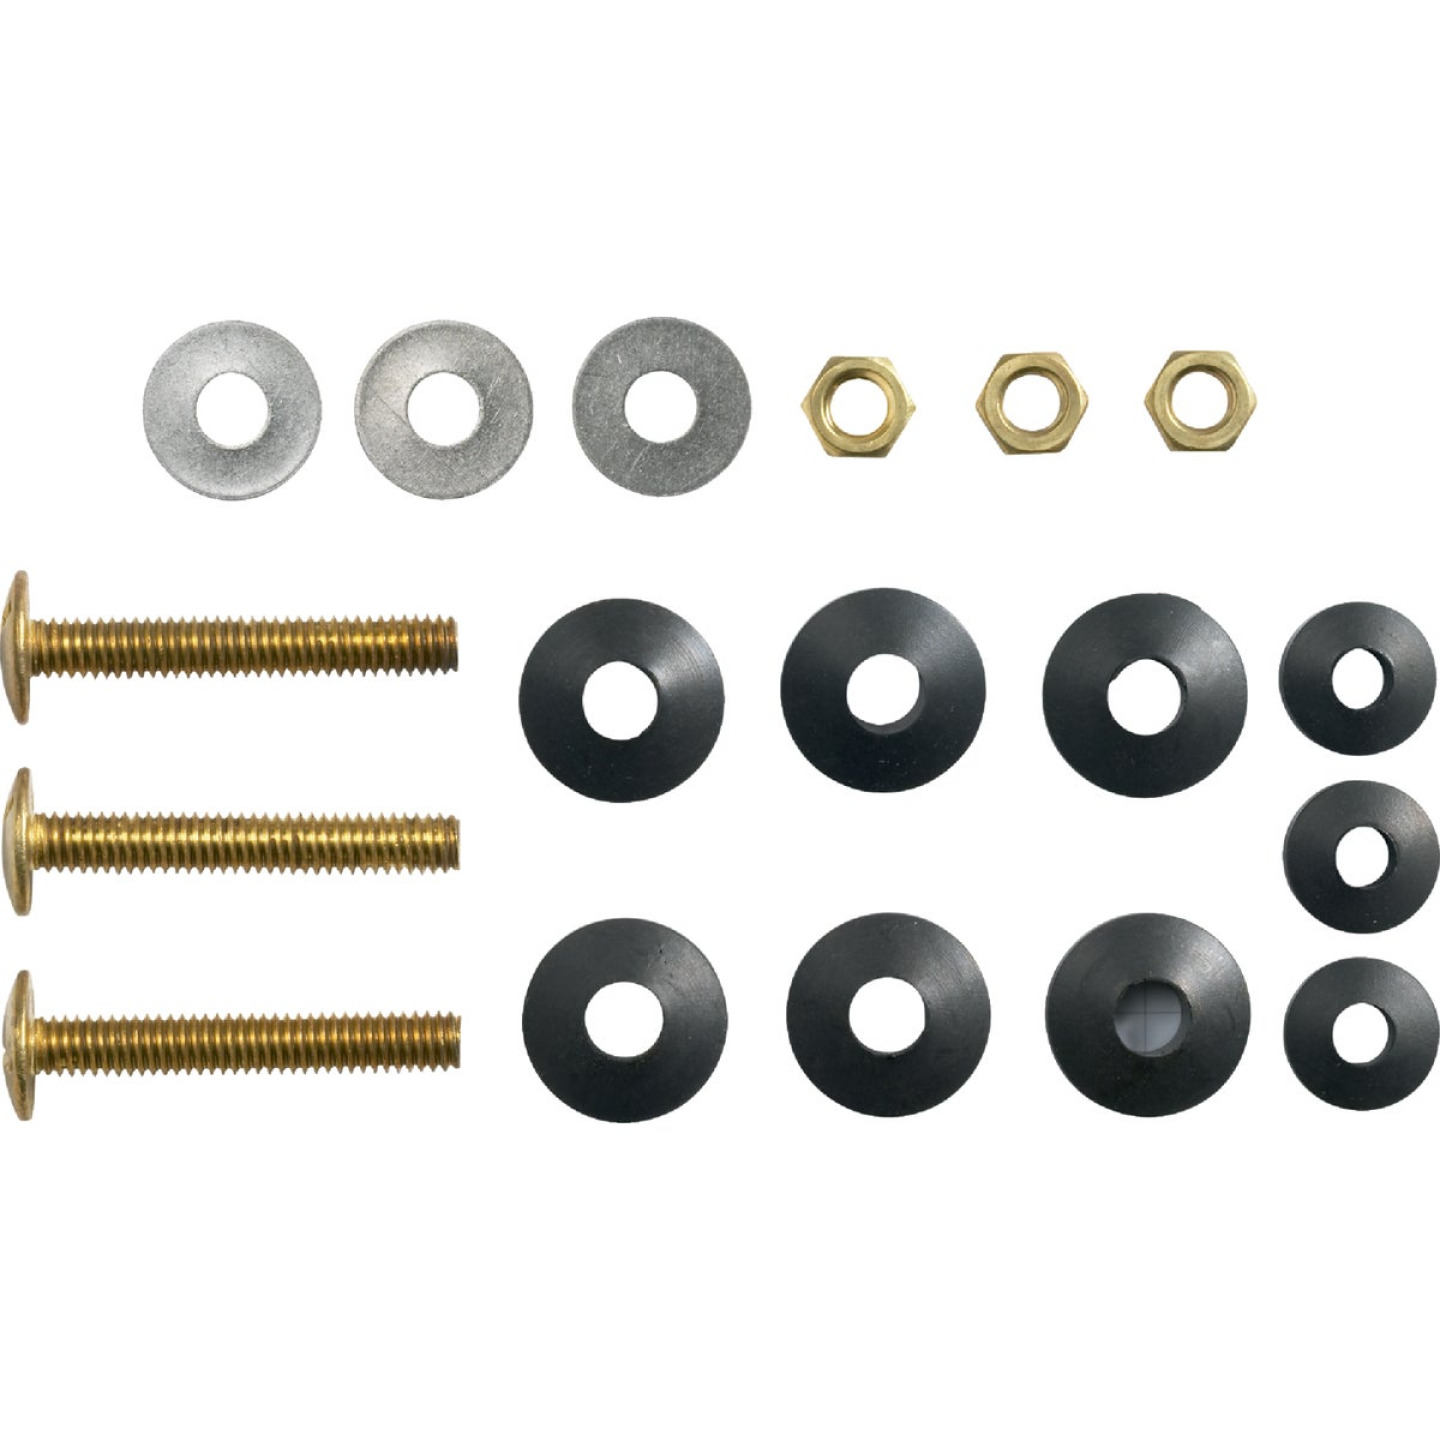 Kohler Genuine Parts 5/16 In. x 3 In. Brass Tank Bolts Assembly Kit  Image 1